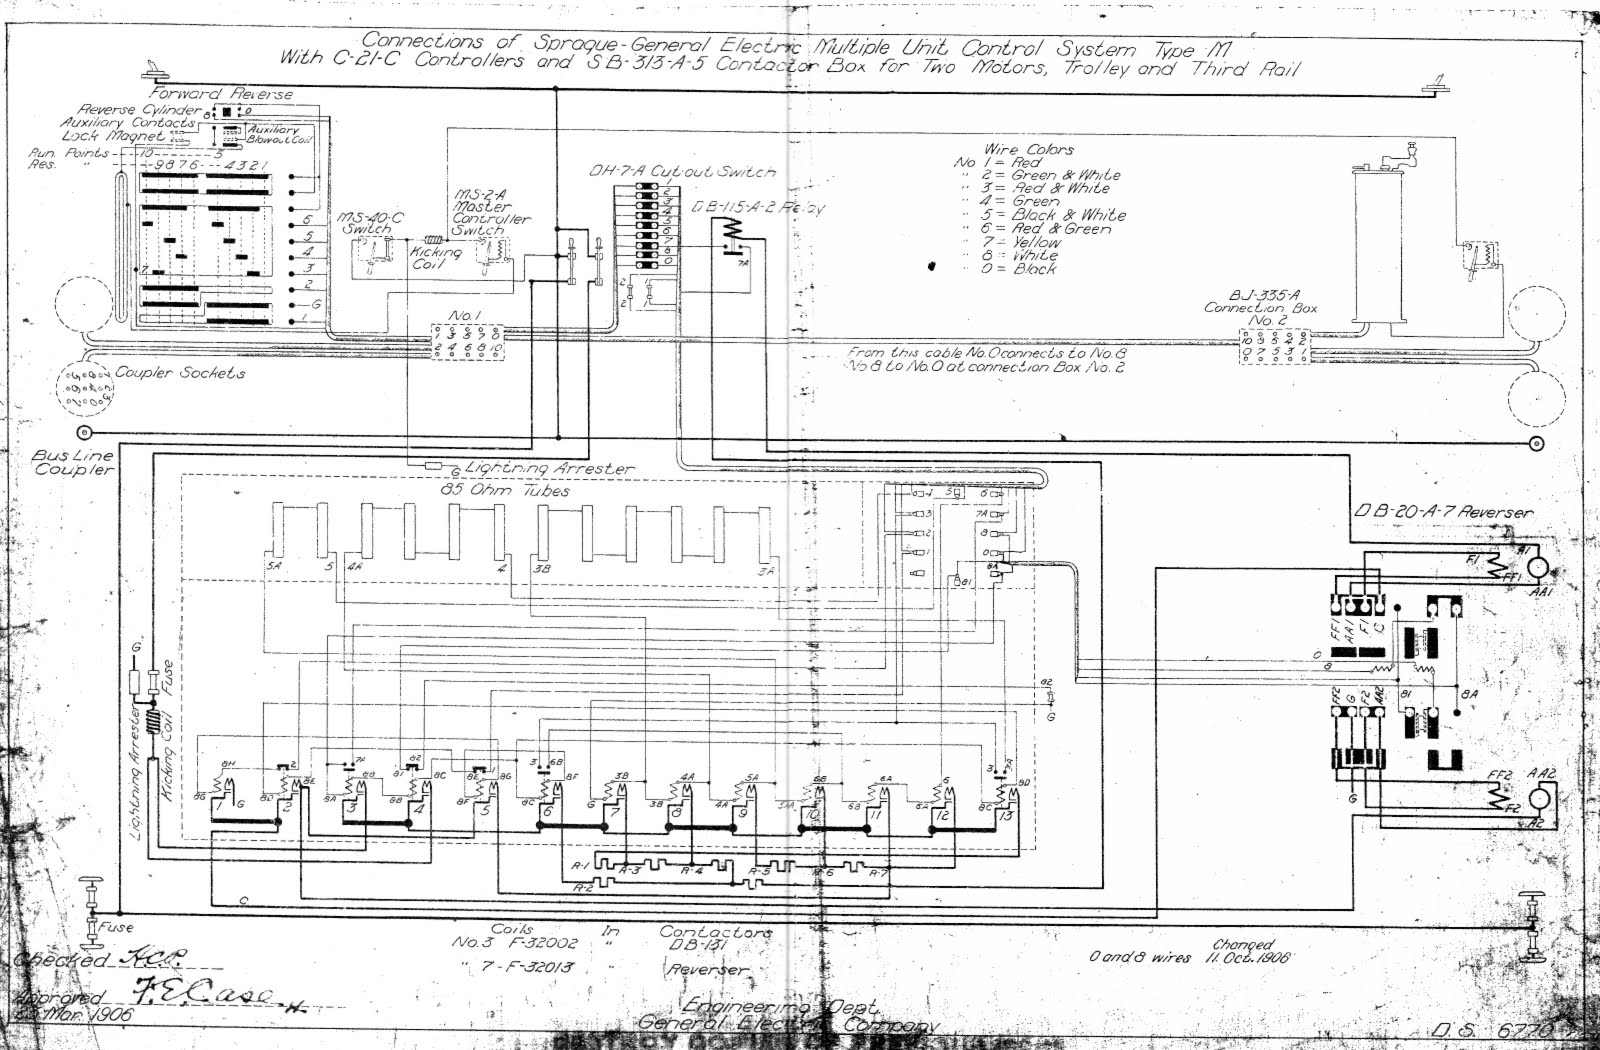 1990 mazda miata wiring diagram with 1994 Acura Integra Wiring Diagram Schematic on Wd general together with P 0996b43f80cb0f2a in addition Mazda Mpv 1994 Mazda Mpv Engine Rotates But Will Not Start in addition Nissan Armada Airbag Control Module Location besides 92 Toyota Camry Fuel Pump Relay Location.